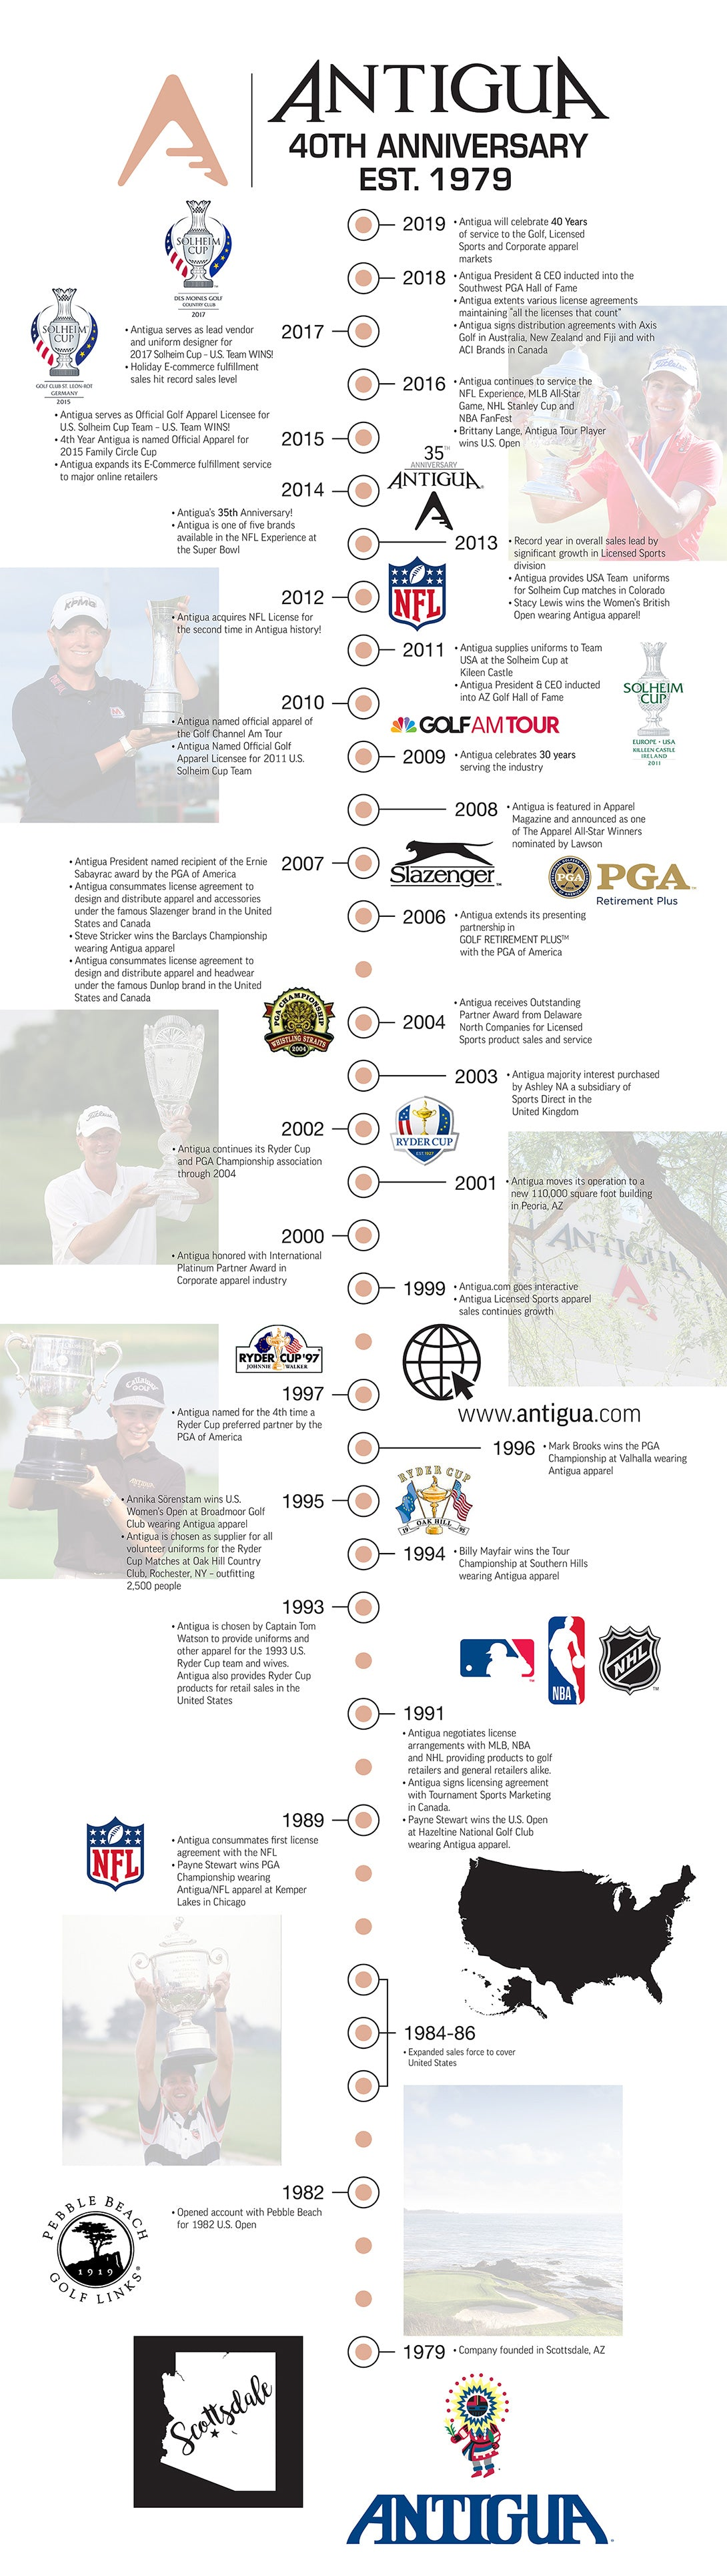 OUR ATHLETES TIMELINE